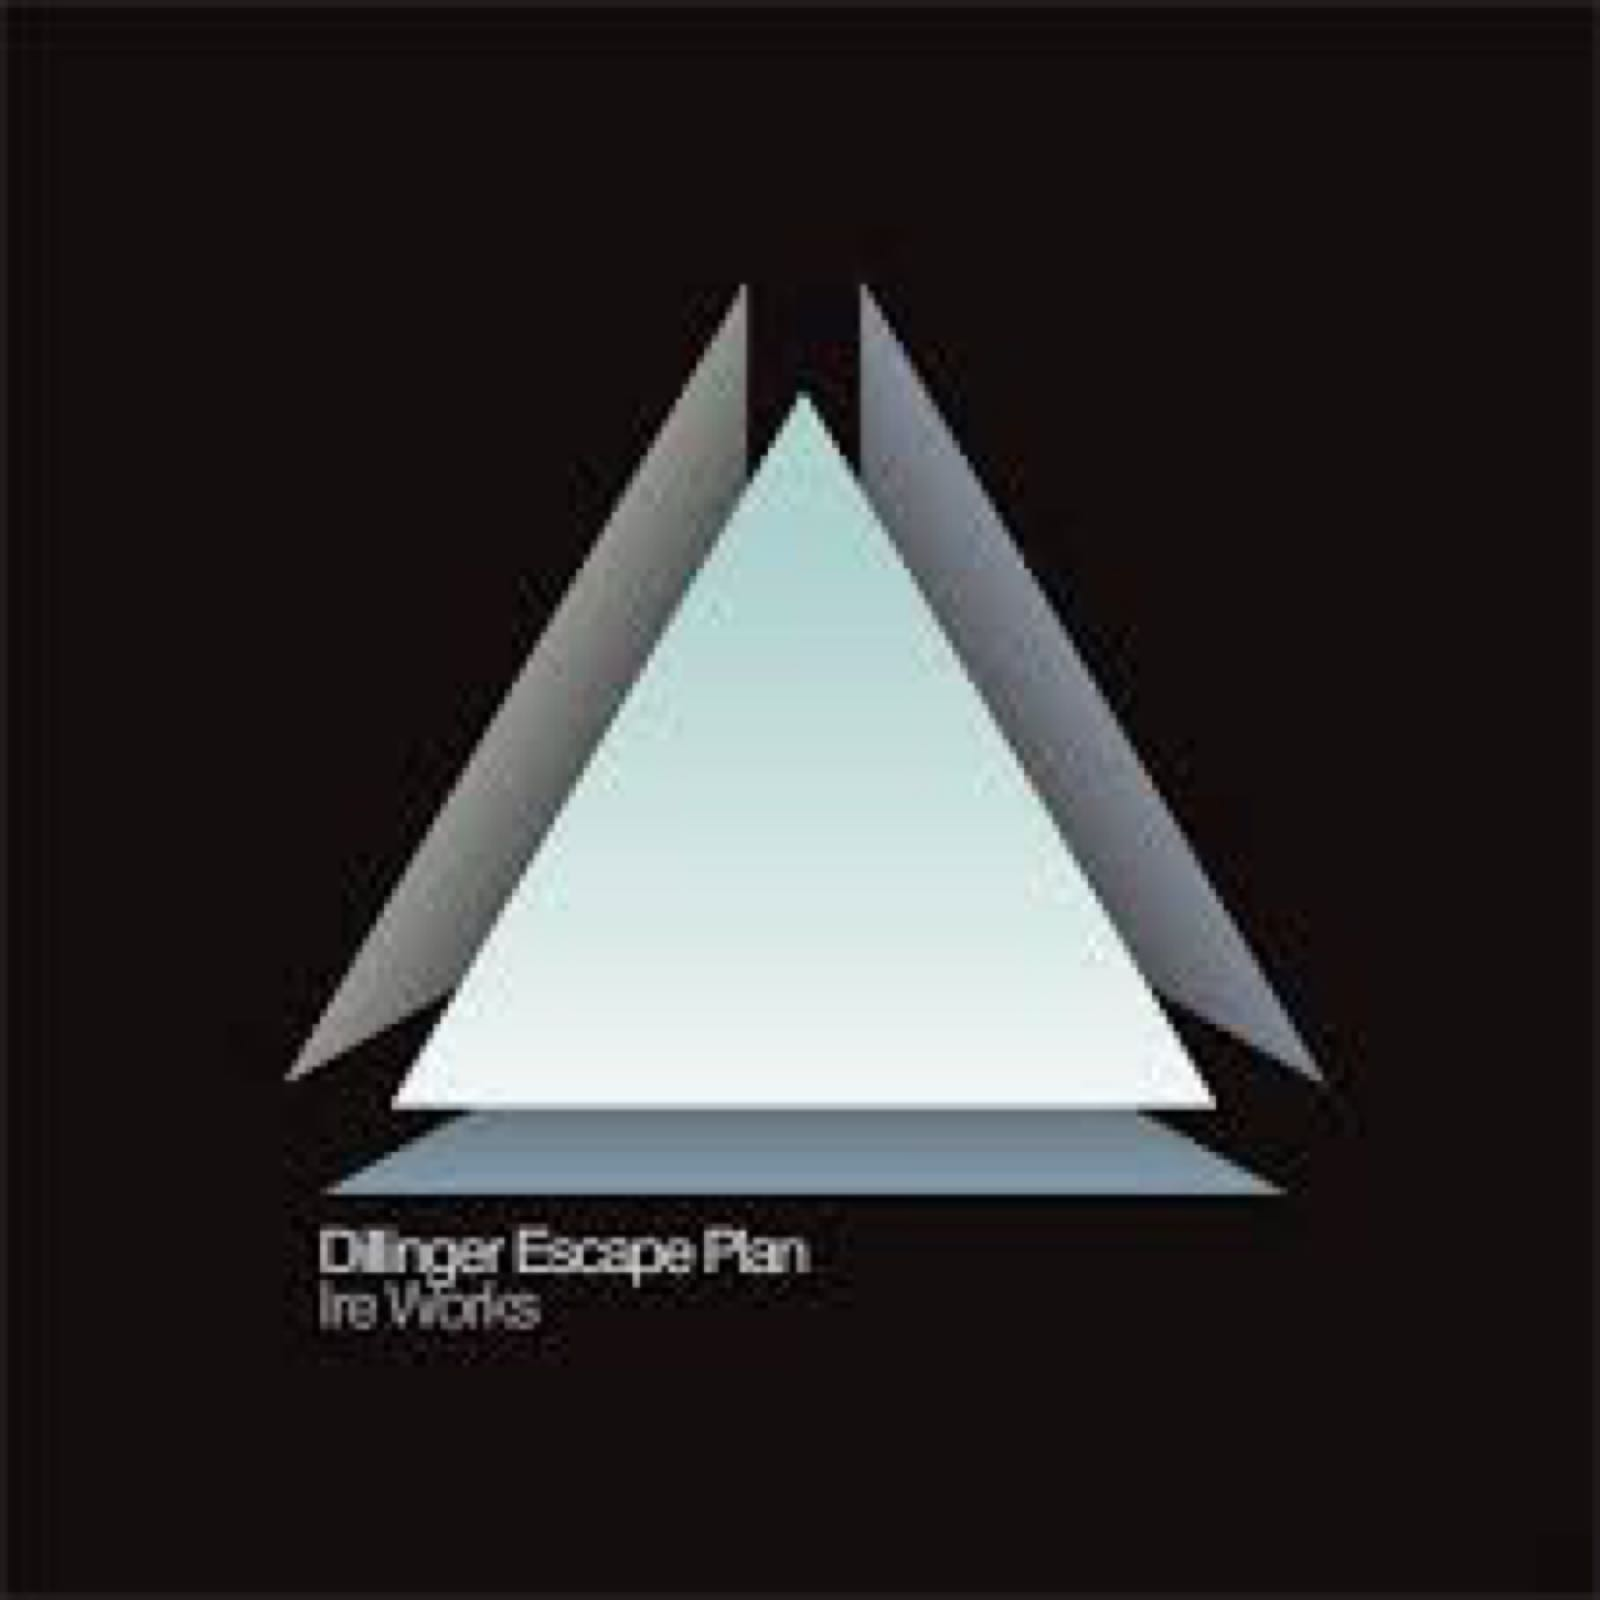 The Dillinger Escape Plan - Ire Works [LP] (Neon Magenta with HEAVY White, Cyan Blue and Royal Blue Splatter Vinyl)